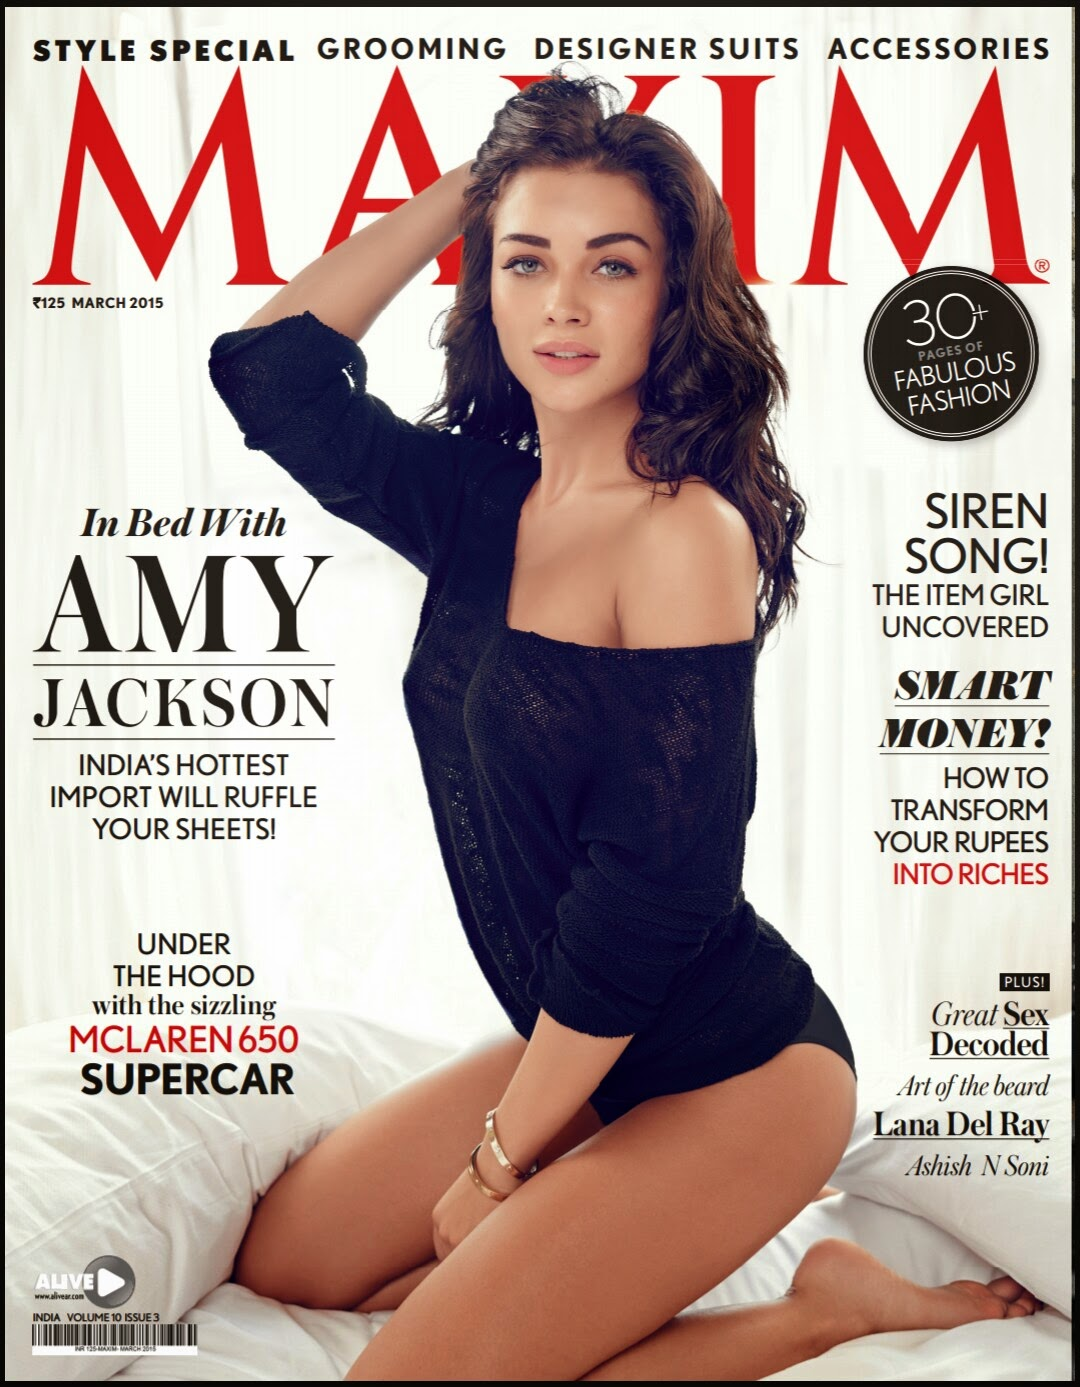 India's Hottest Heroine - Amy Jackson